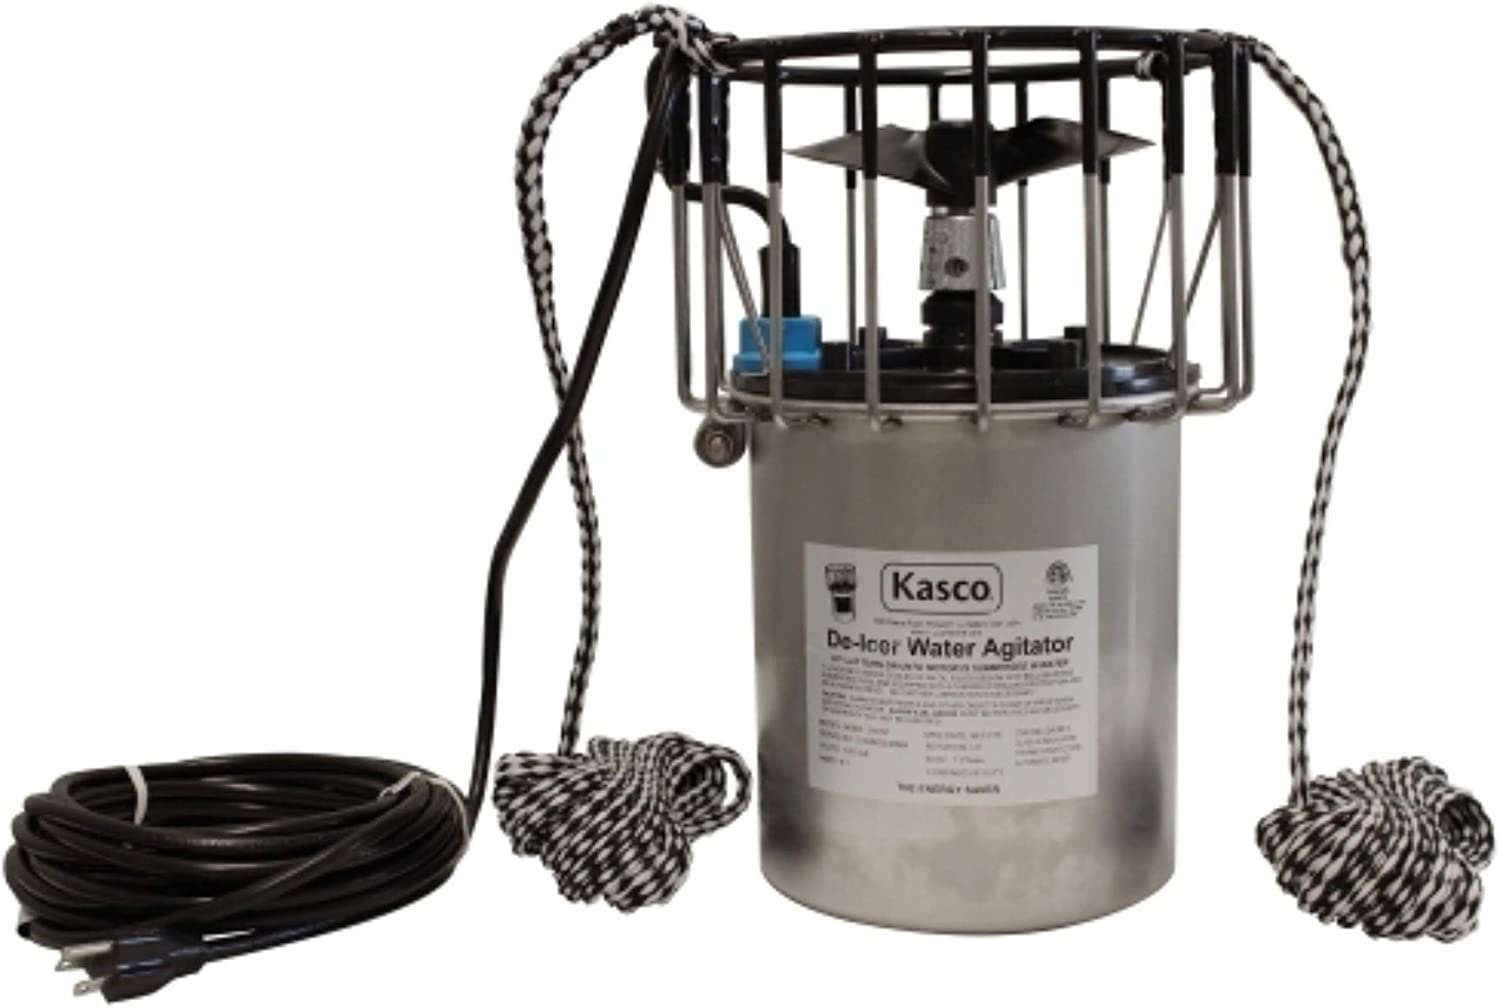 Kasco Marine 3400D100 - De-Icer, 3/4hp, 120 volts, Clears A Circle Up To 75' Diameter, 100' Cord